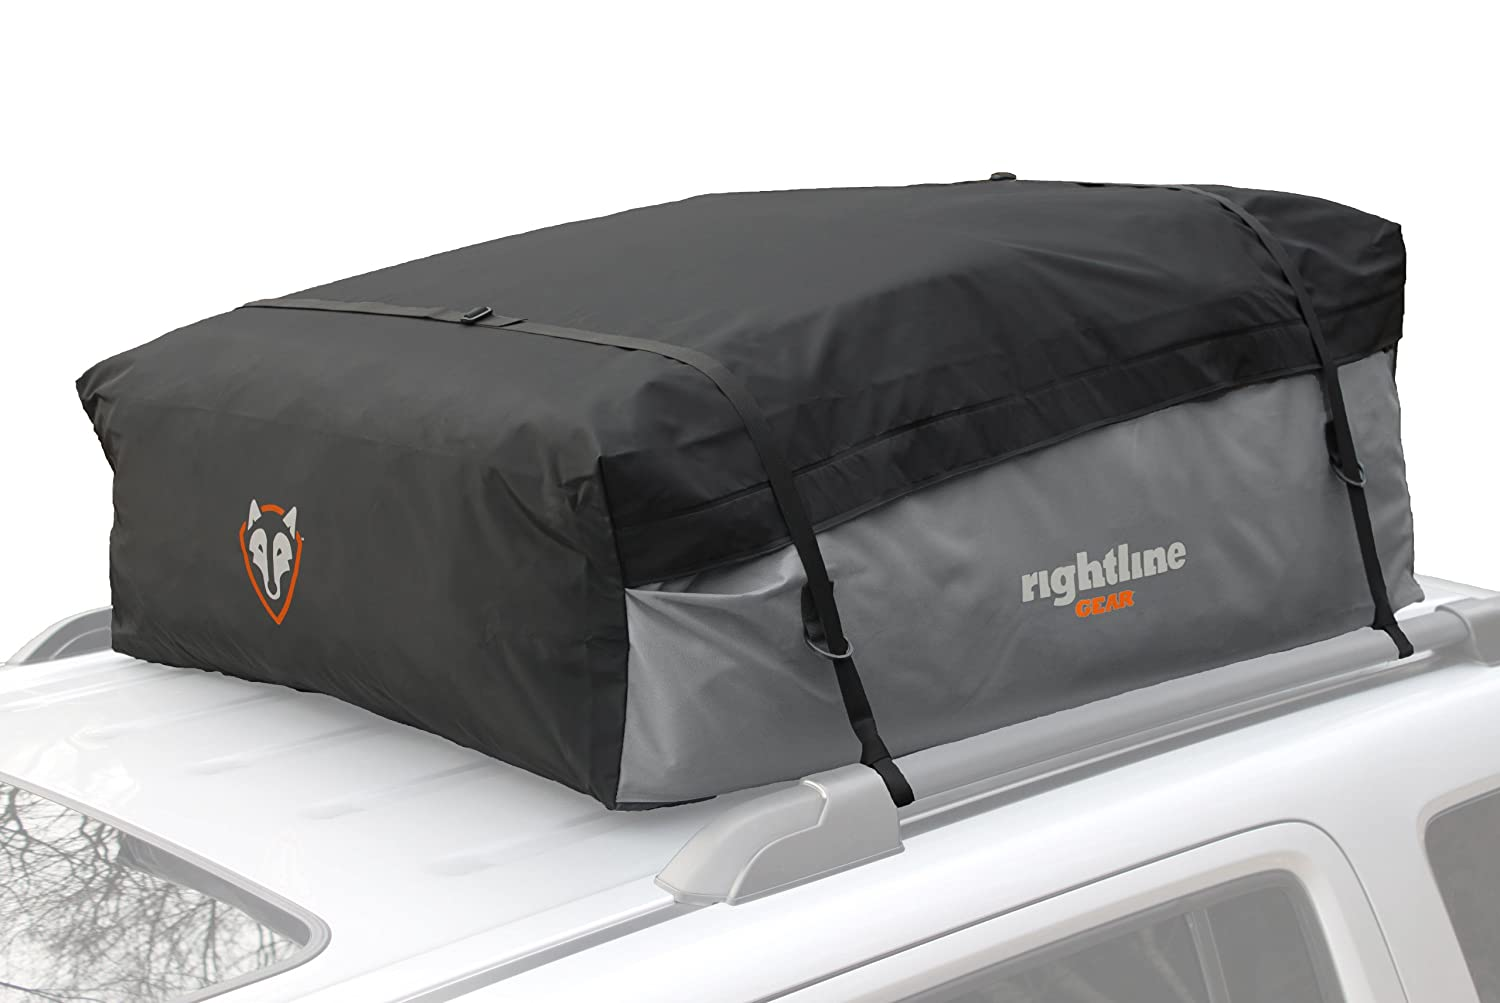 Car Top Carrier Hard Shell Sport 3 Car Top Carrier by